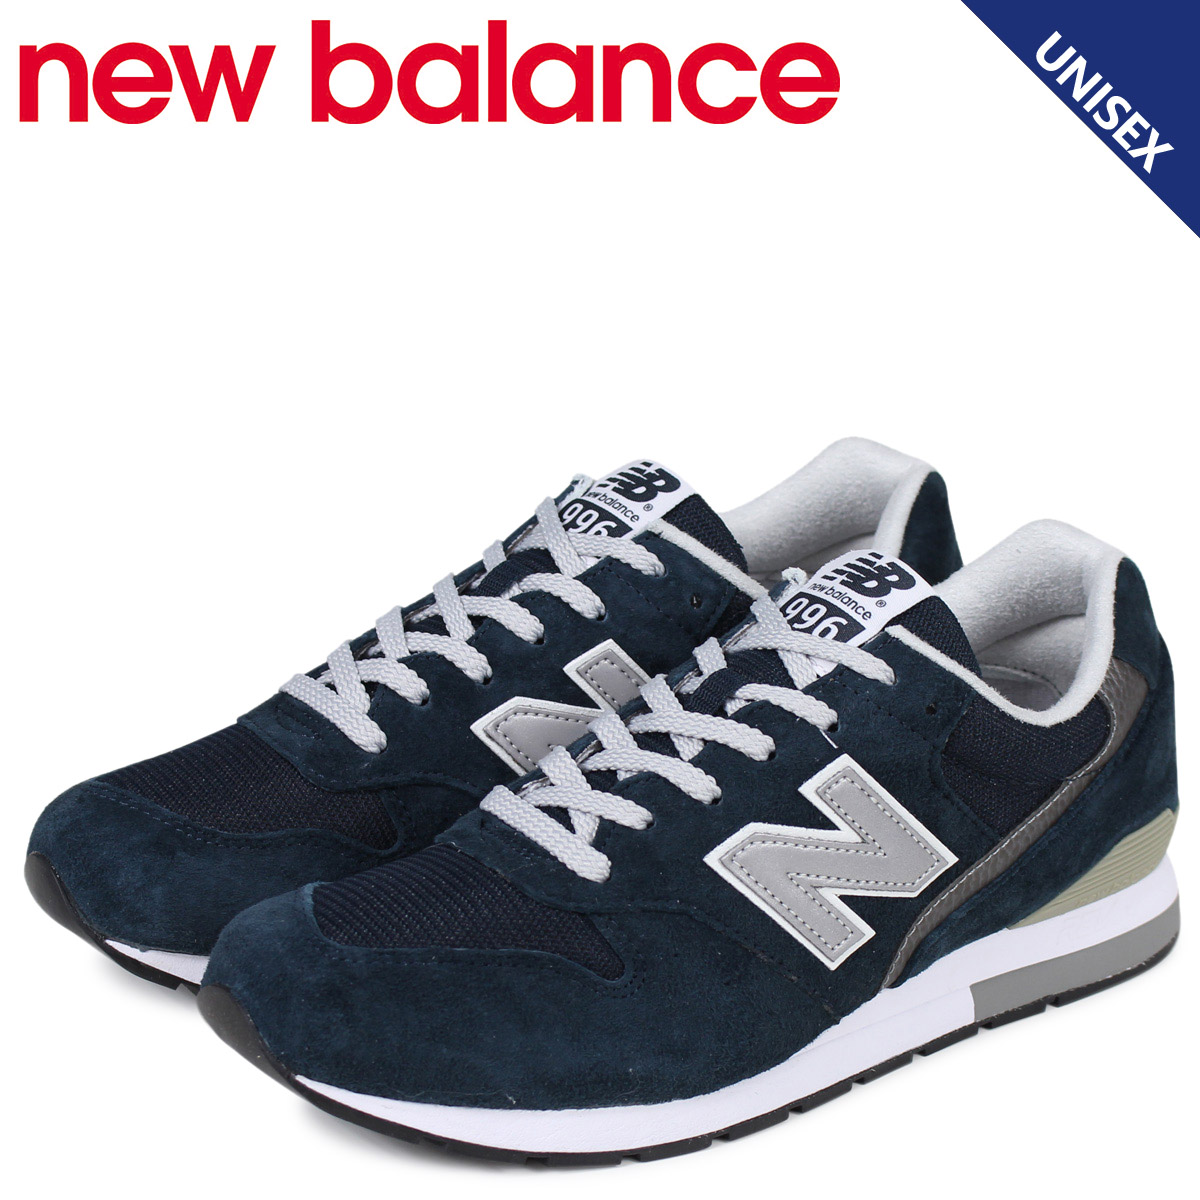 694b441404c03 Sugar Online Shop: new balance 996 lady's men's New Balance sneakers  MRL996AN D Wise shoes navy | Rakuten Global Market